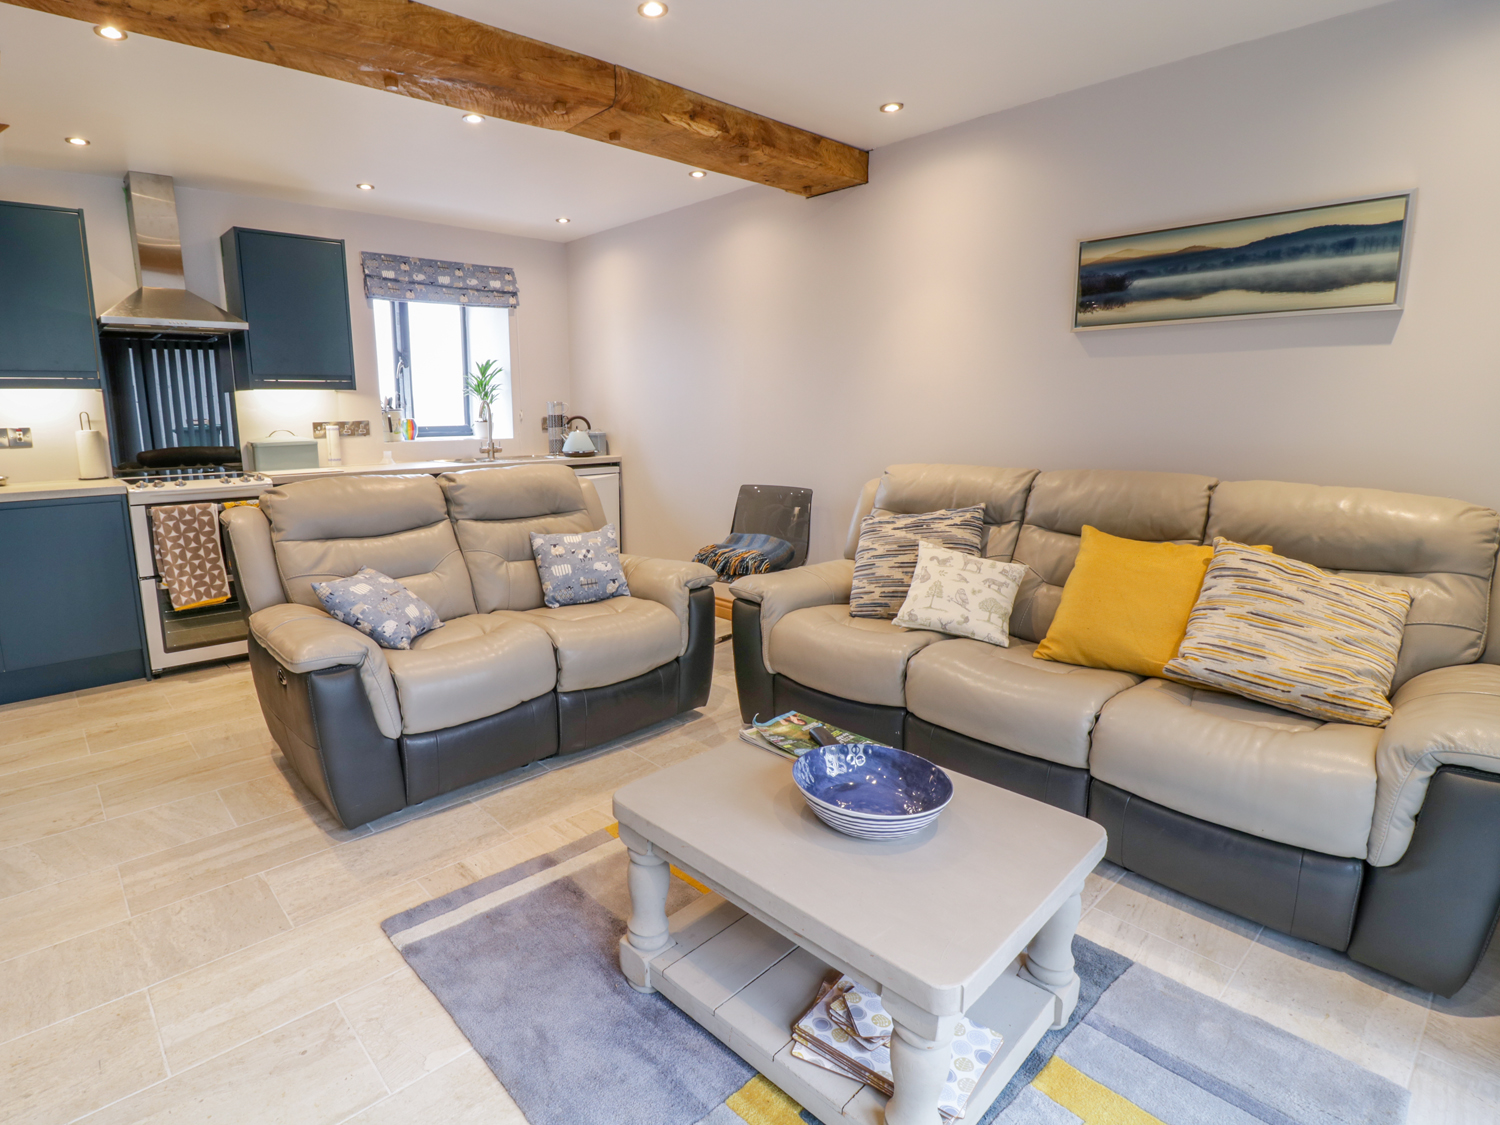 3 bedroom Cottage for rent in Caersws